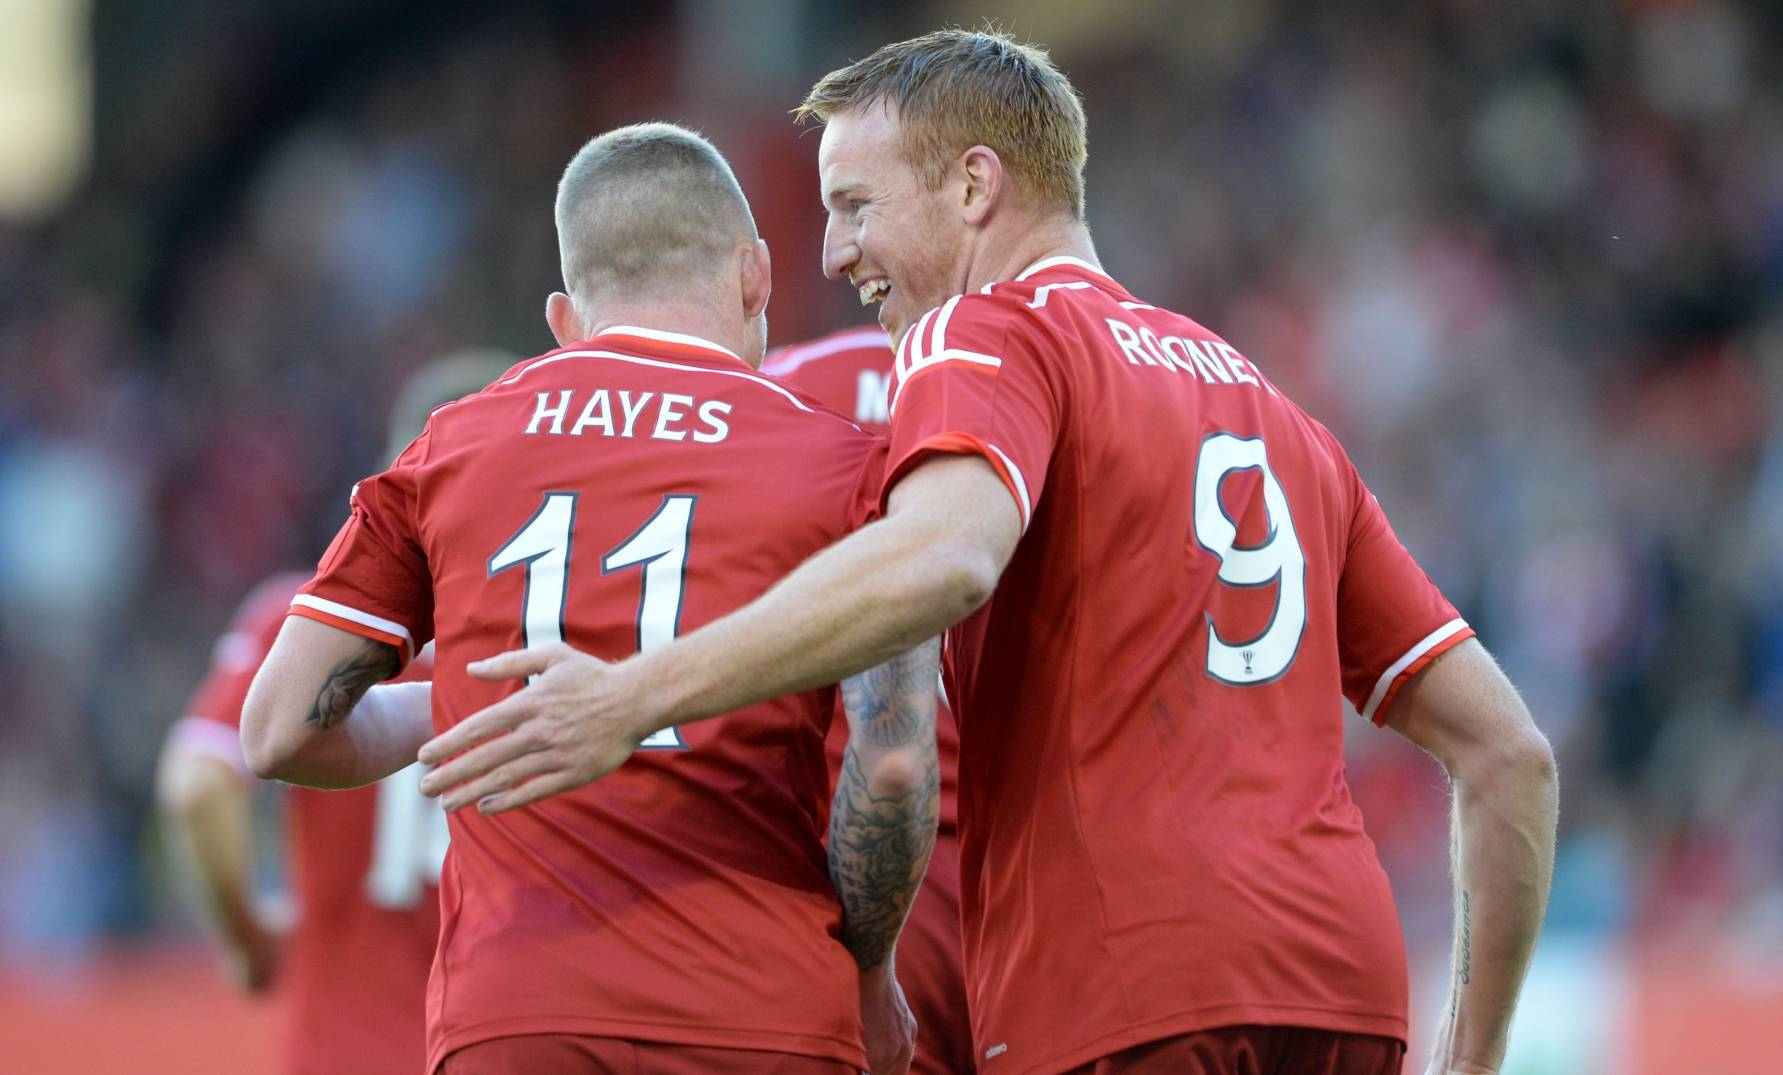 Differing fortunes for Dons duo Jonny Hayes and Adam Rooney.